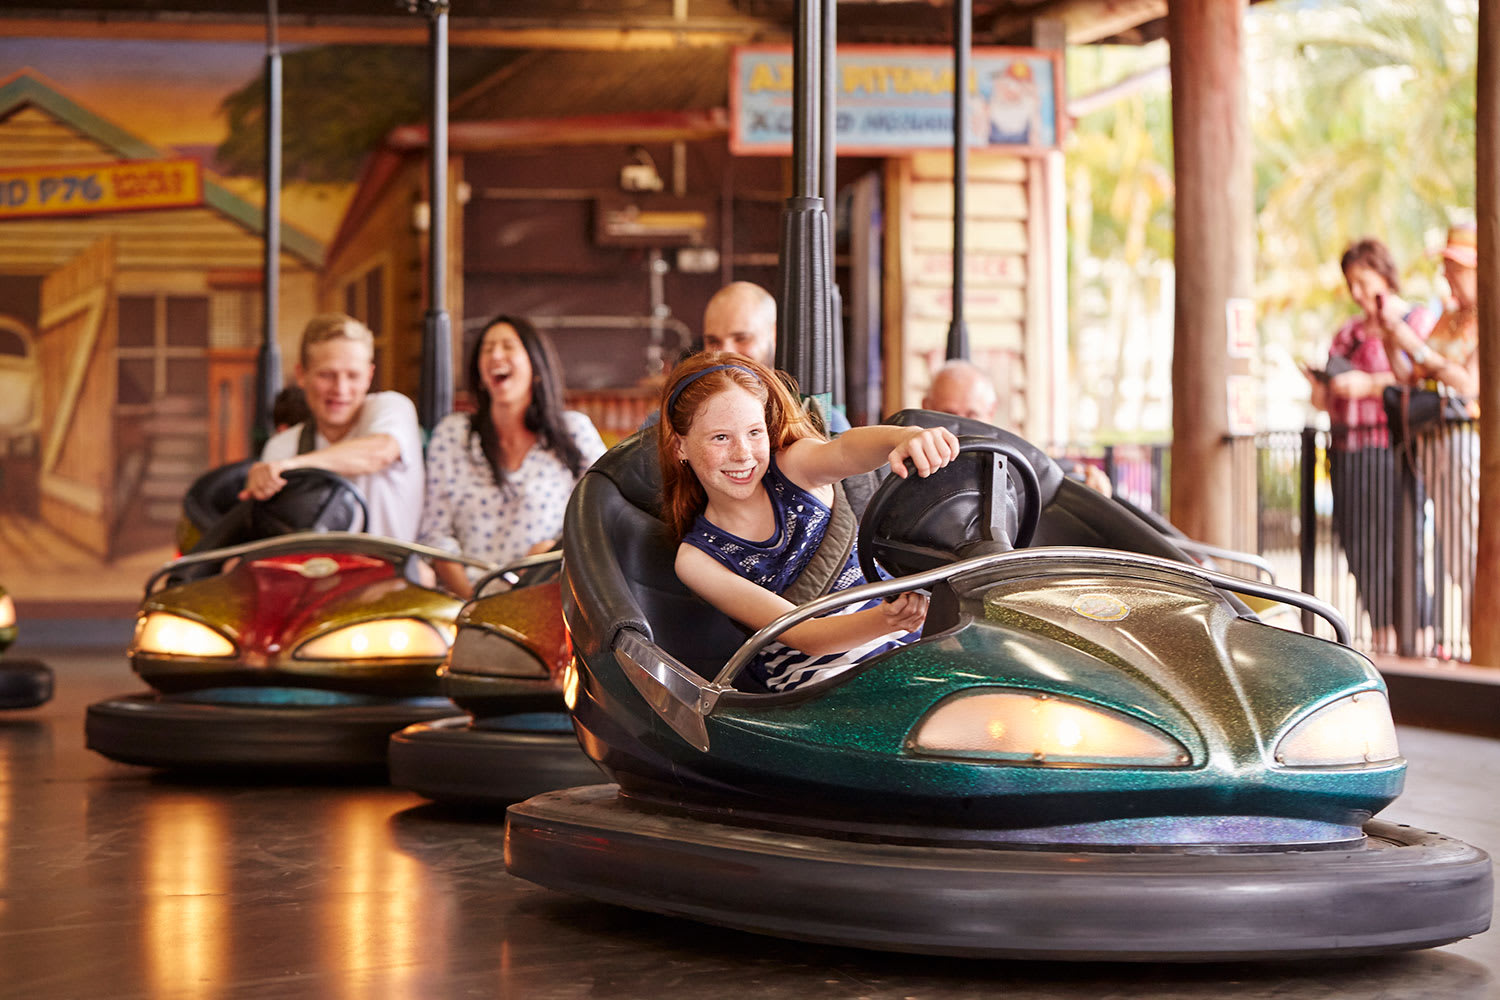 Aussie World Entry with Unlimited Rides